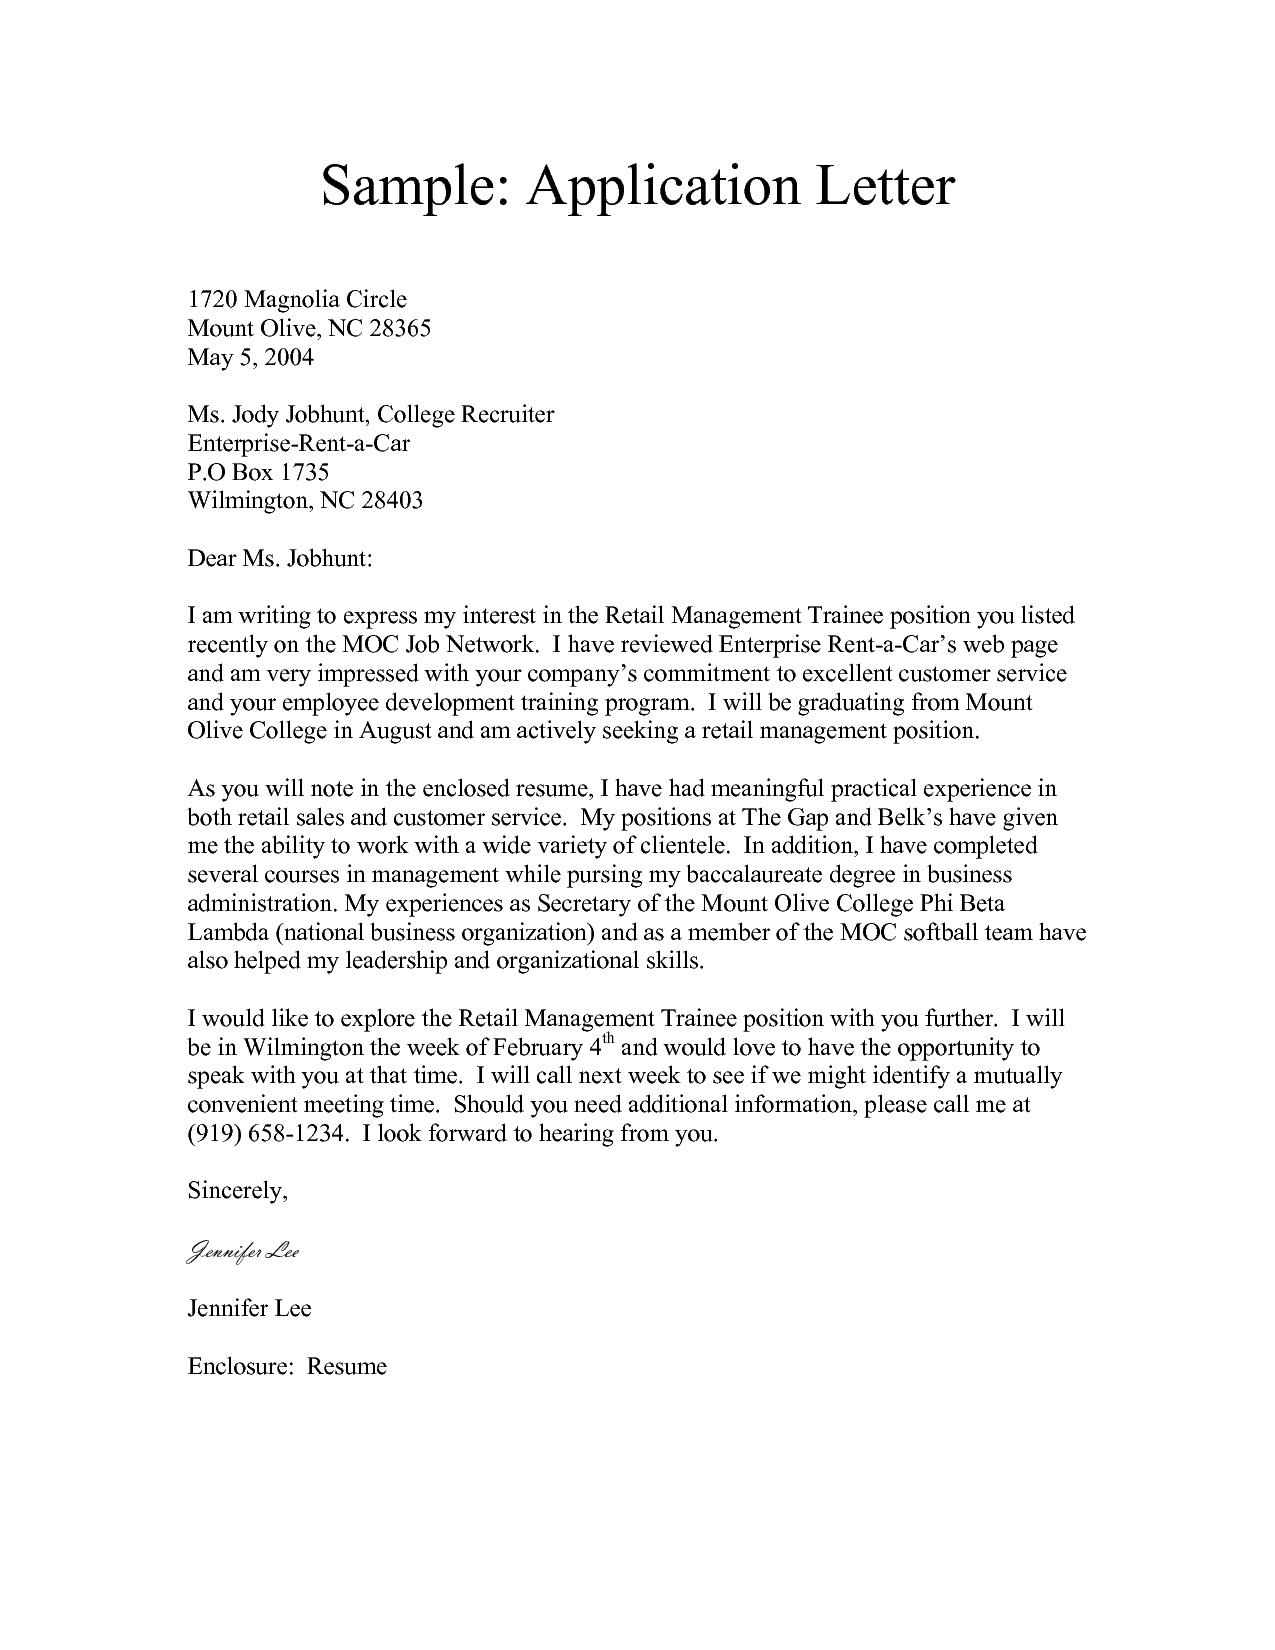 Charming What Is A Letter Of Application Application Letter Samples Sample